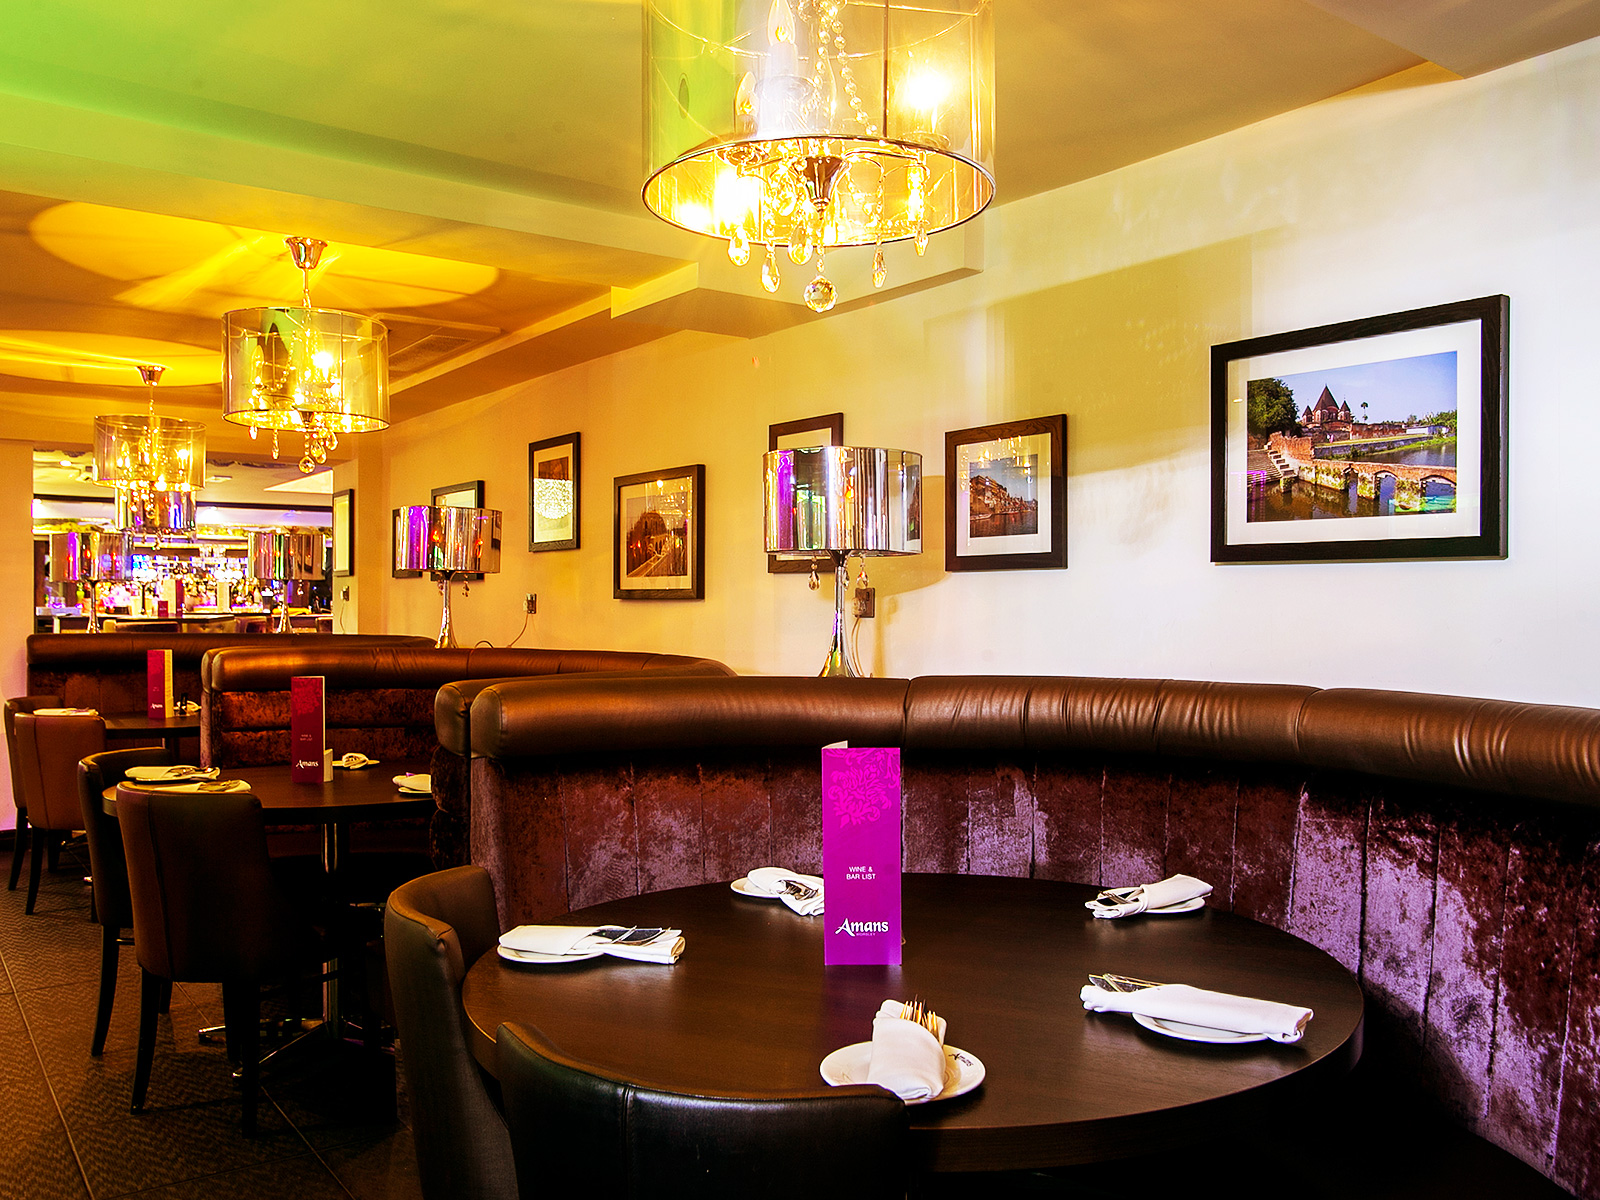 Amans worsley for Aman indian cuisine